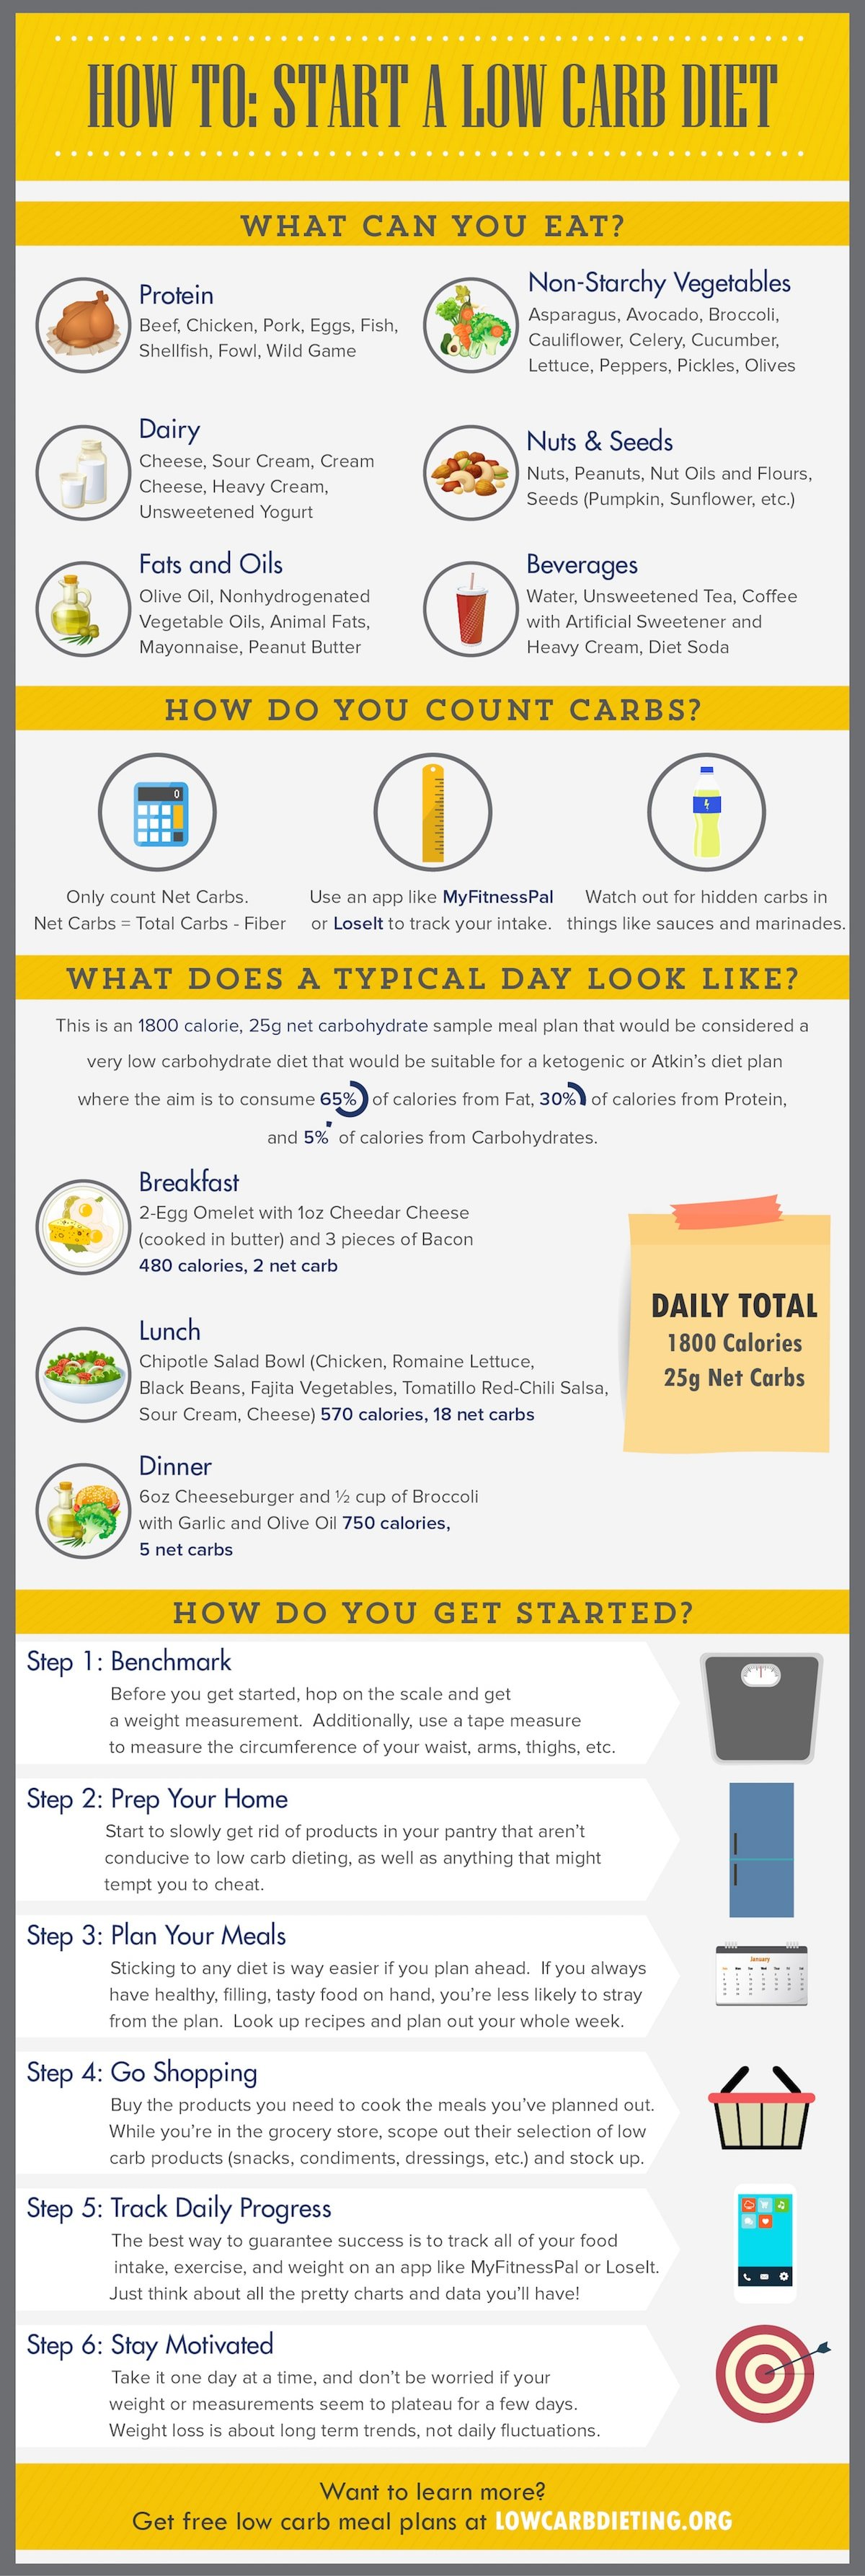 Starting a Low Carb Diet